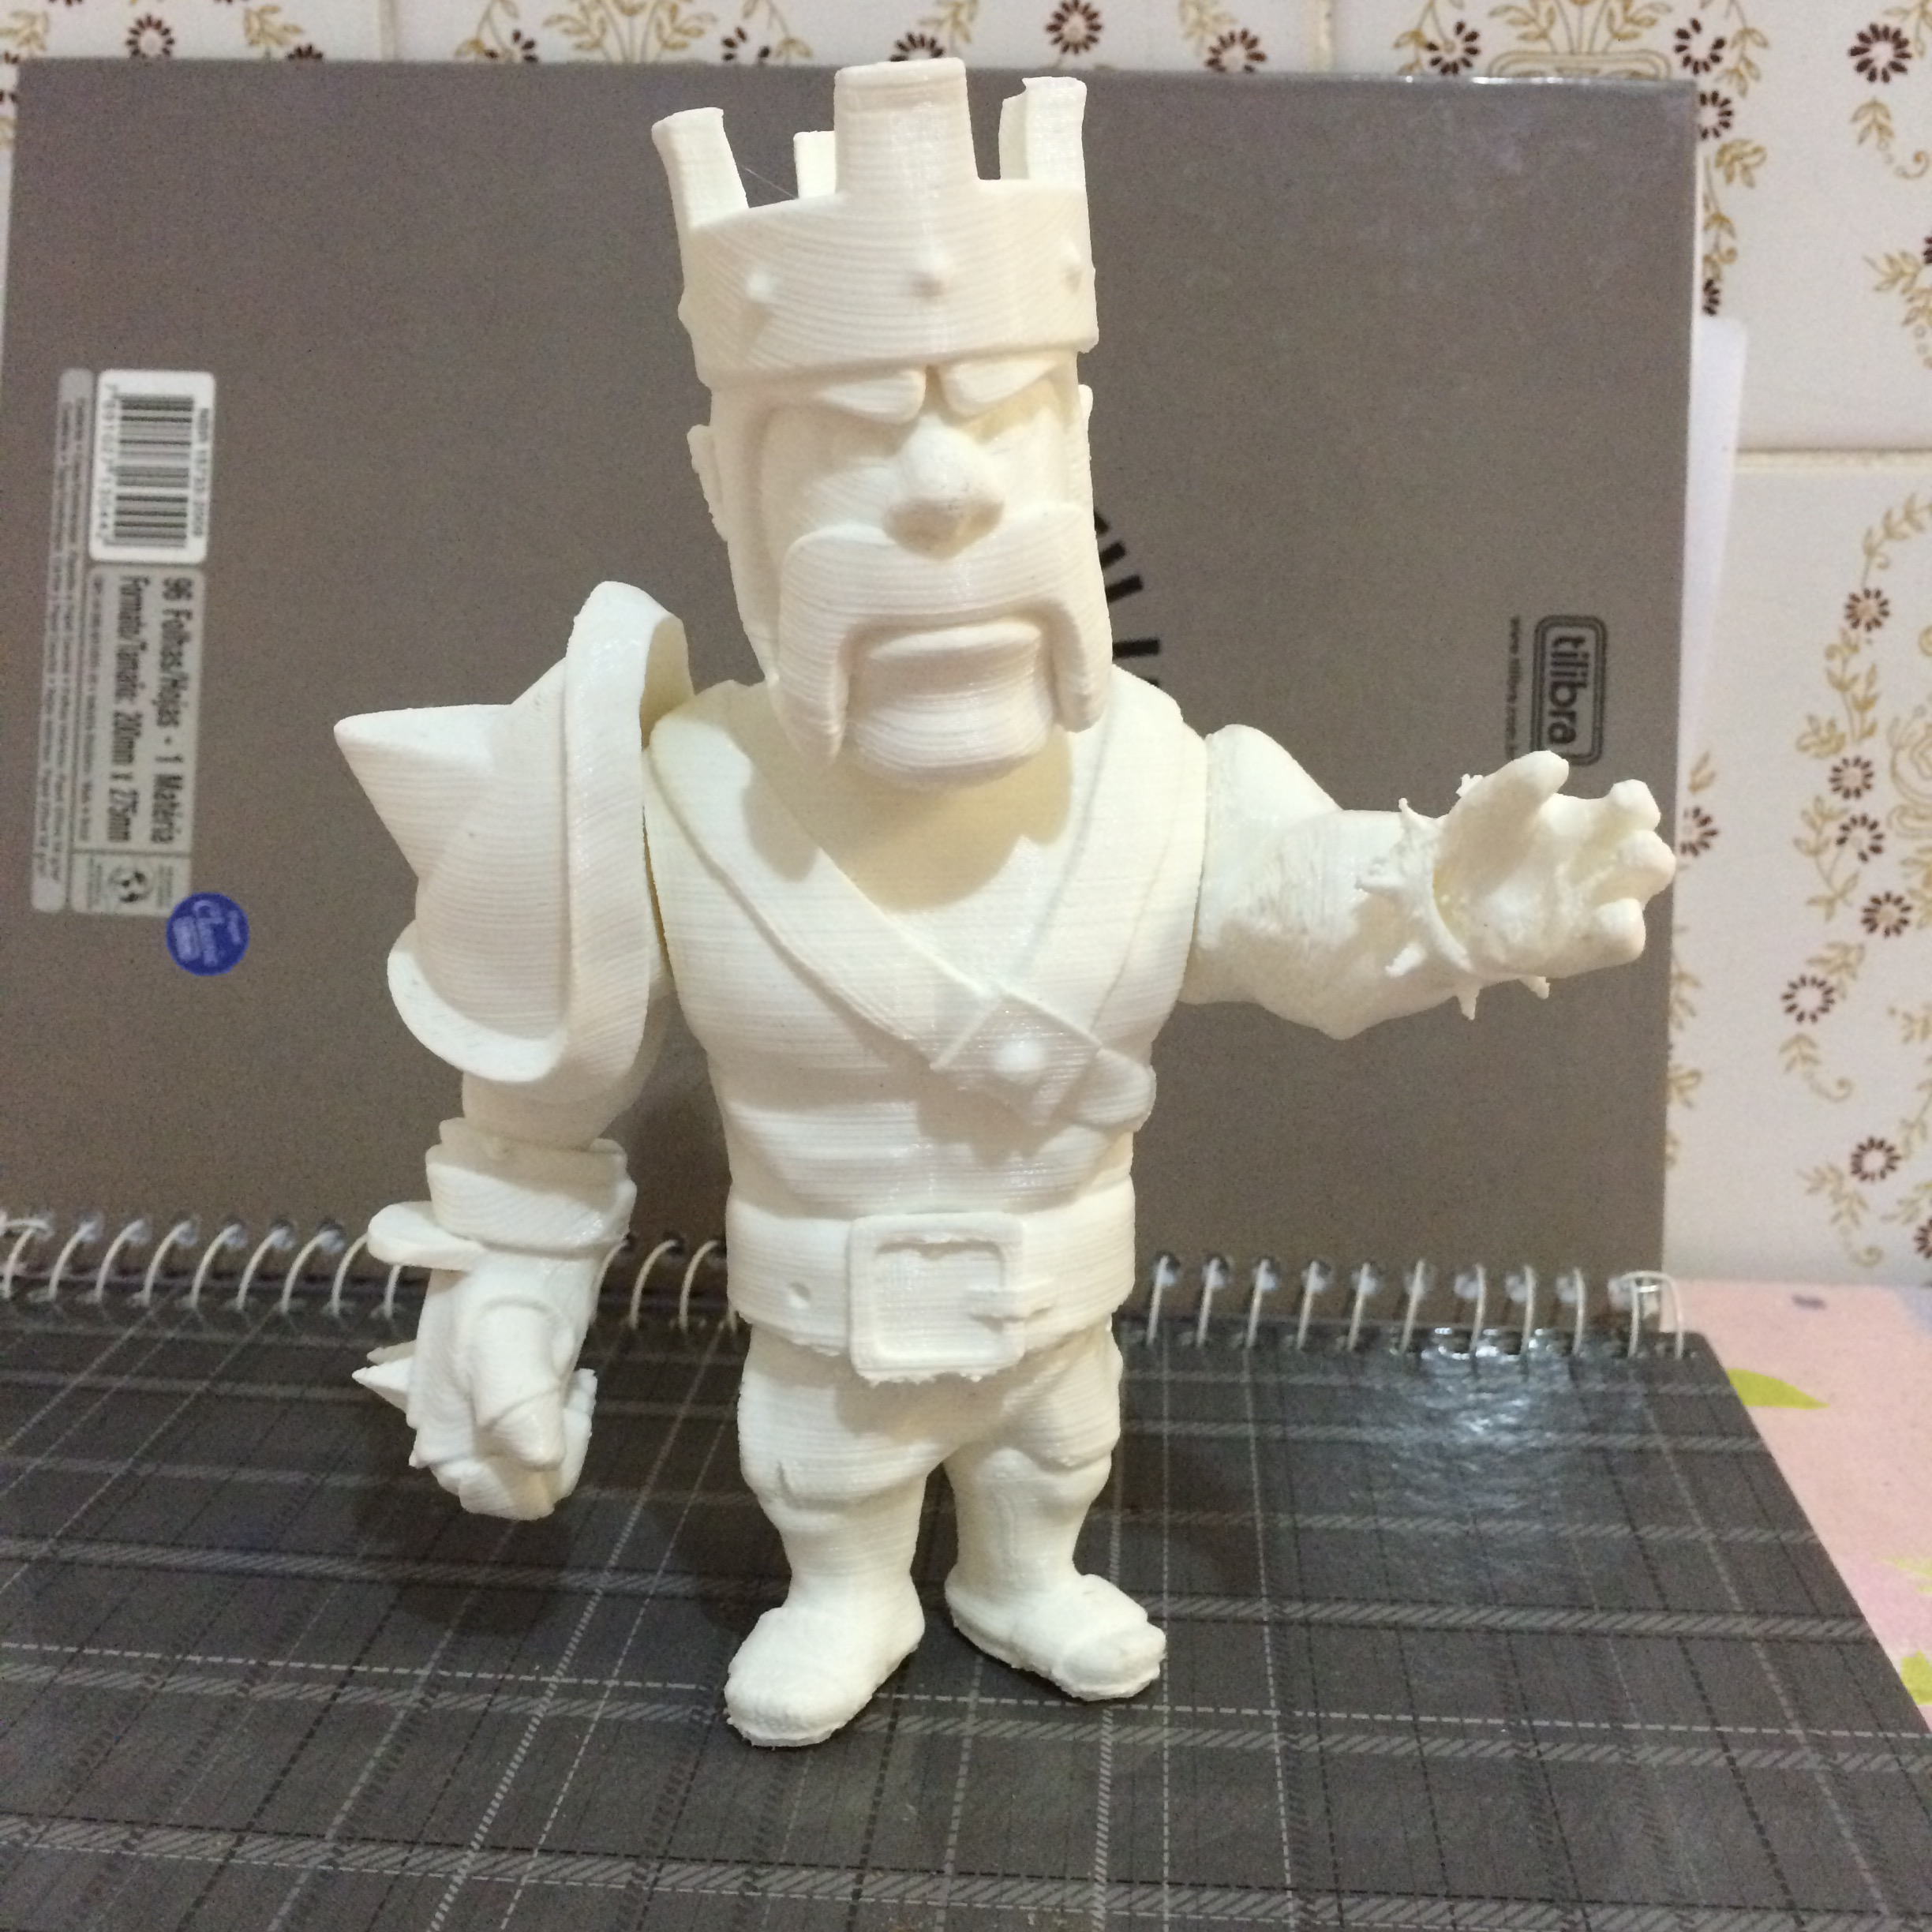 3D Printable Barbarian King Clash Of Clans By Ricardo Alves